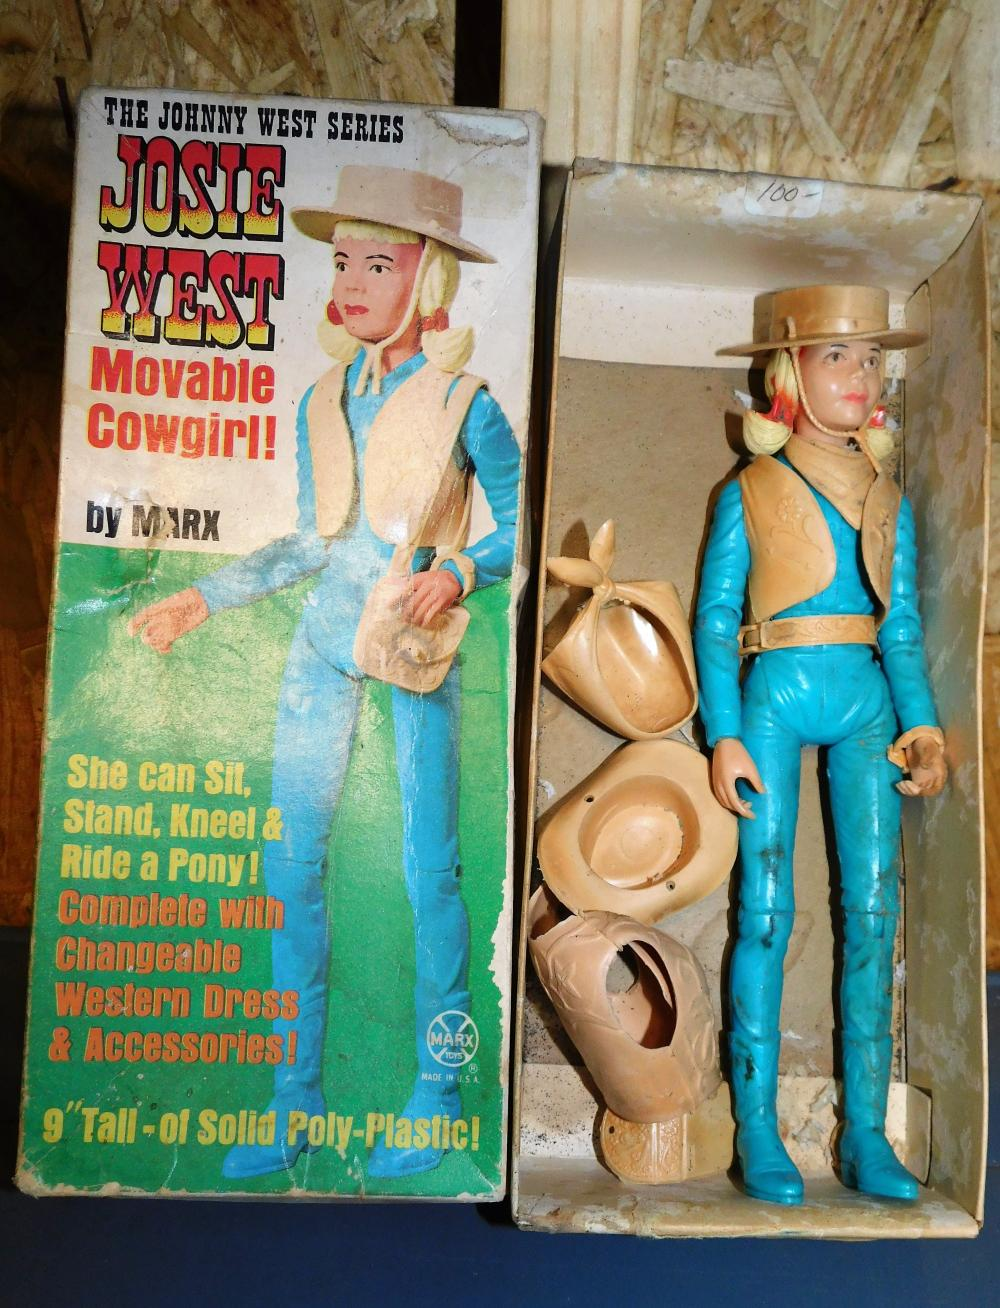 Marx Josie West moveable cowgirl with accessories